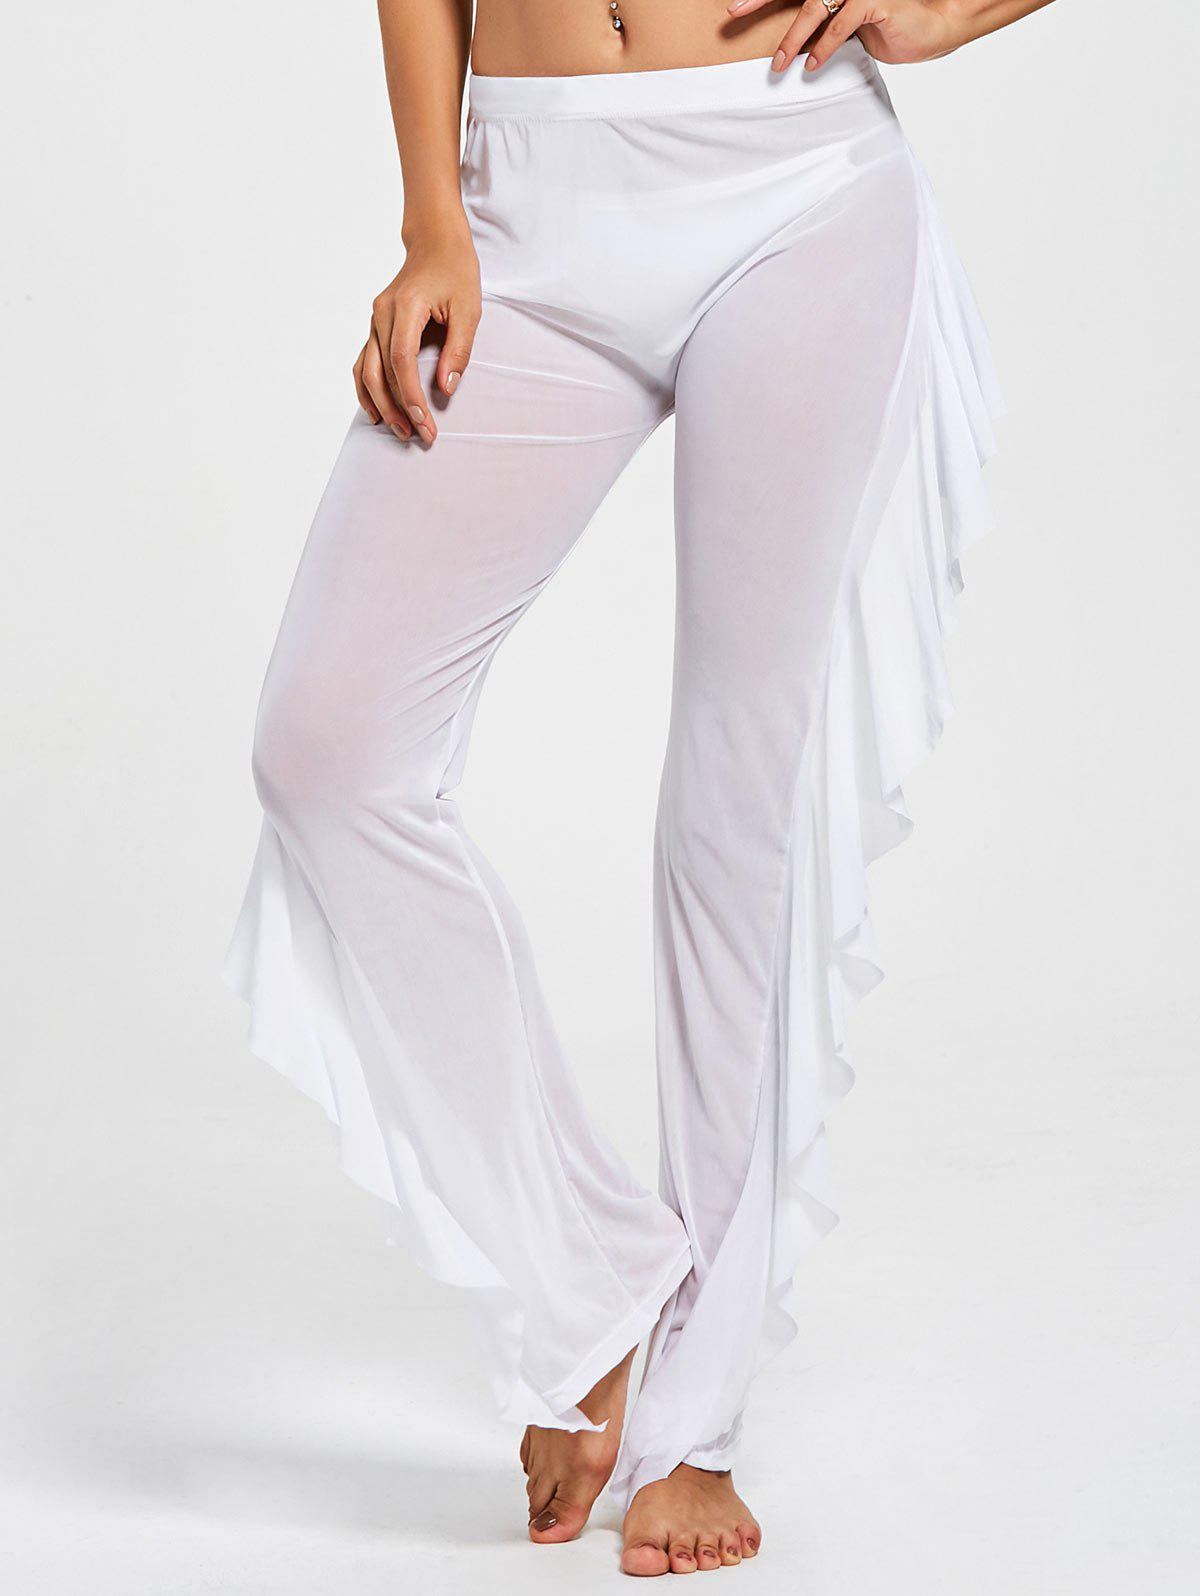 Hot Ruffled See Through Mesh Cover Up Pants